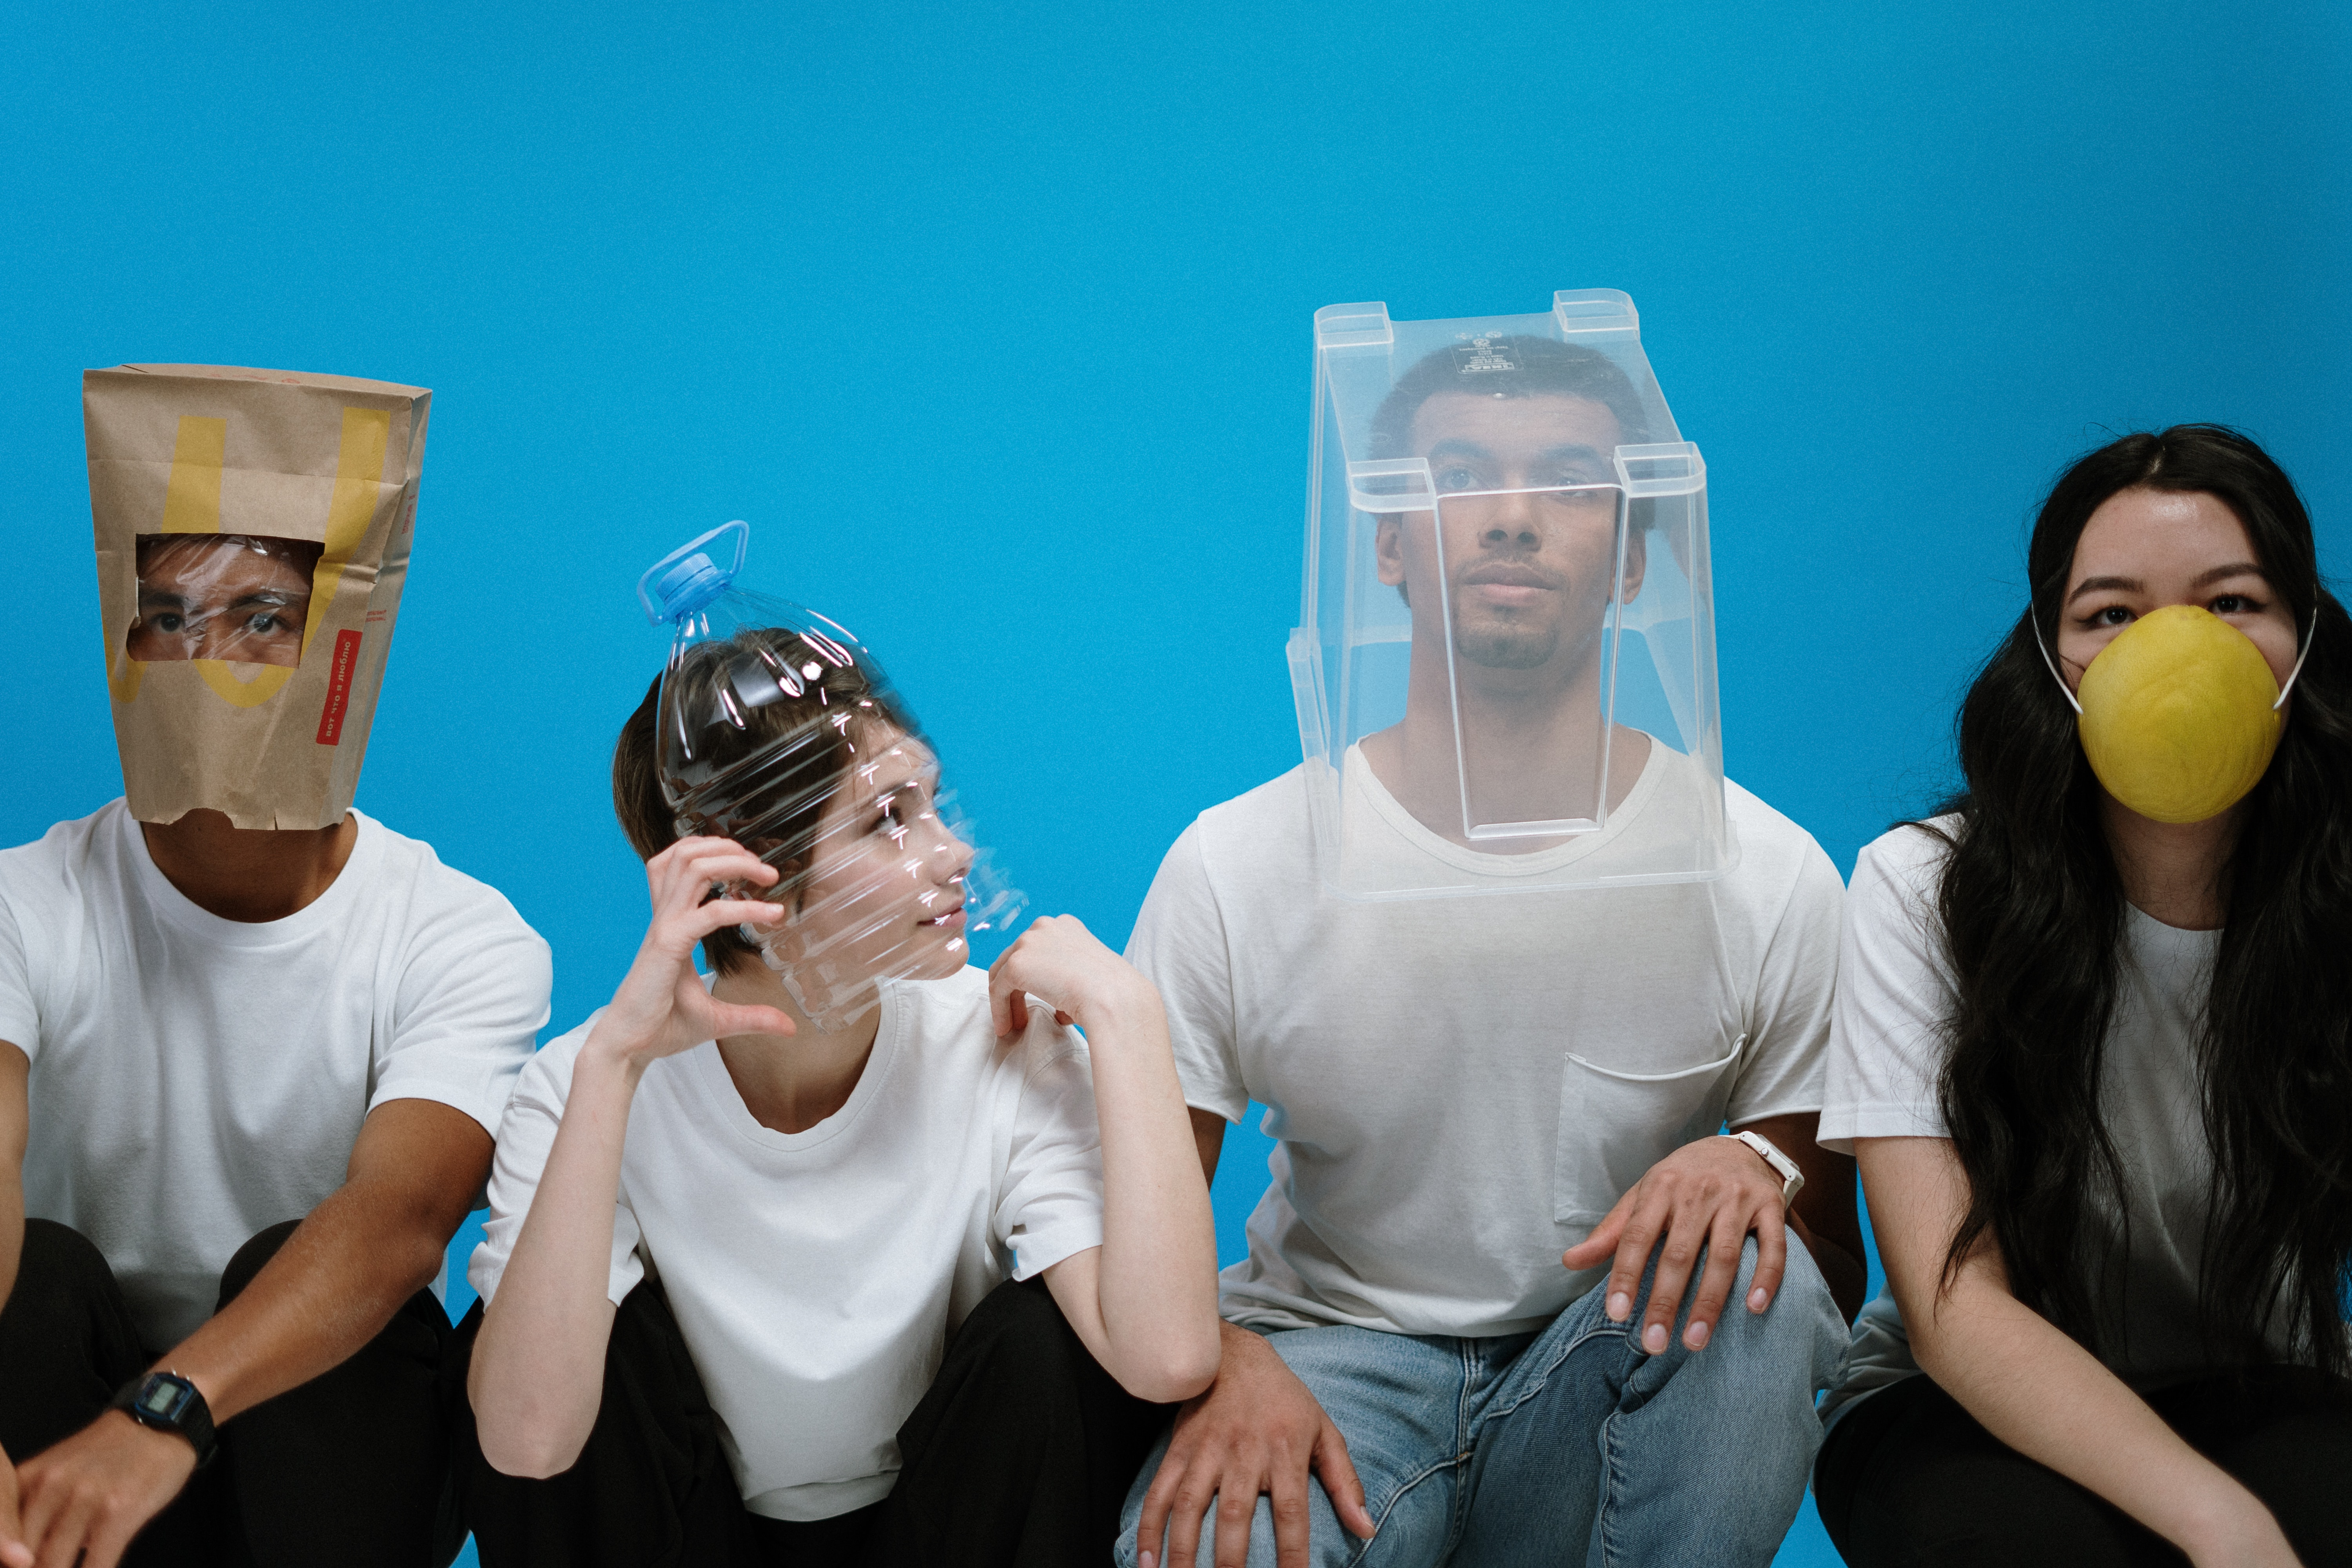 Being stuck in quarantine can eventually get a little boring. However, visiting an escape room and playing an escape game be very exciting. Read on to know more.